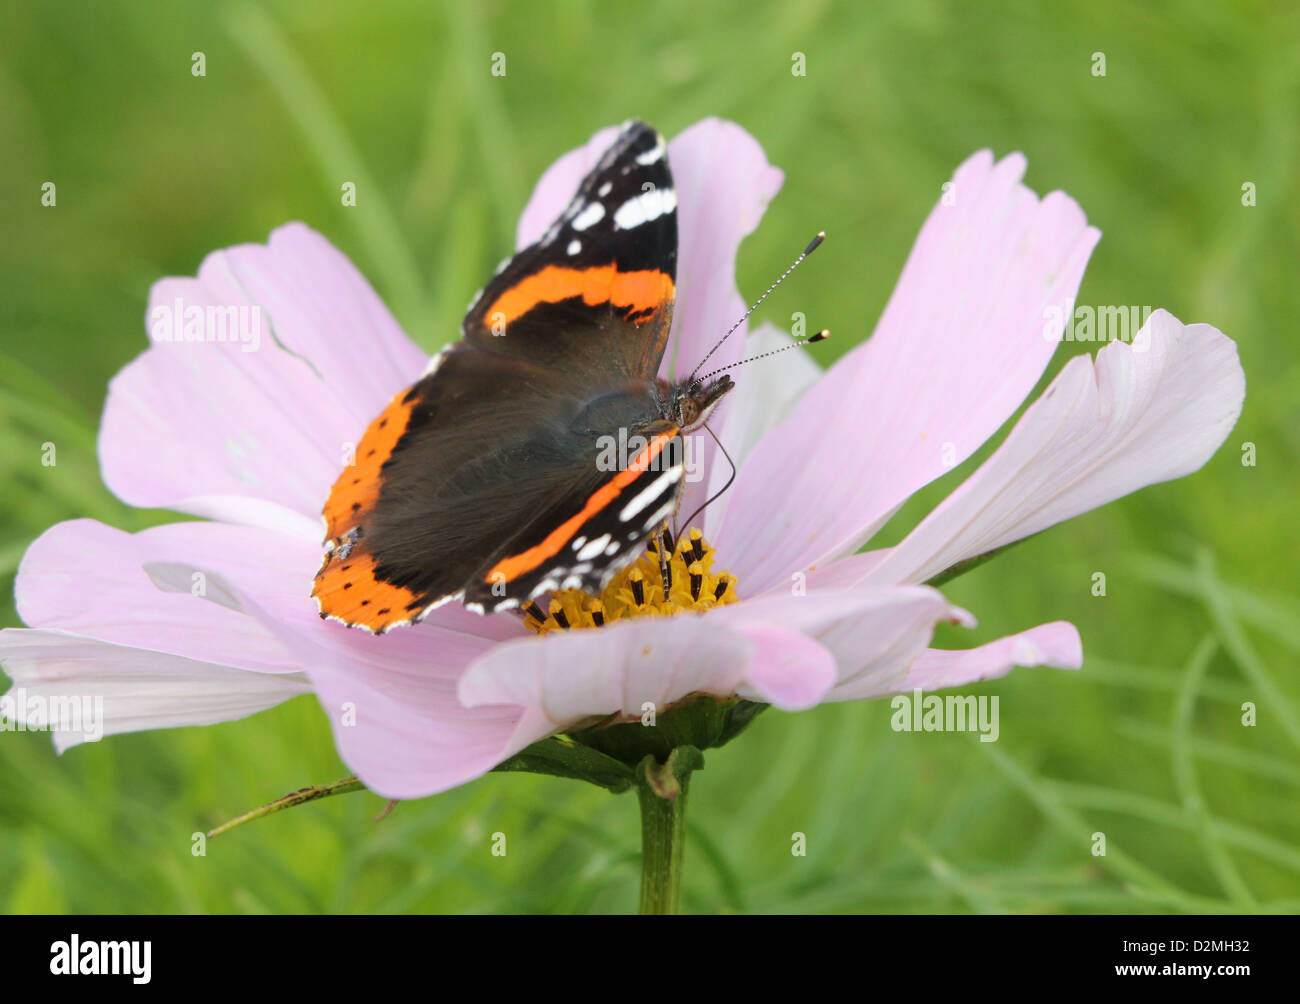 Red admiral butterfly (vanessa atalanta) on a giant pink flower in summer - Stock Image